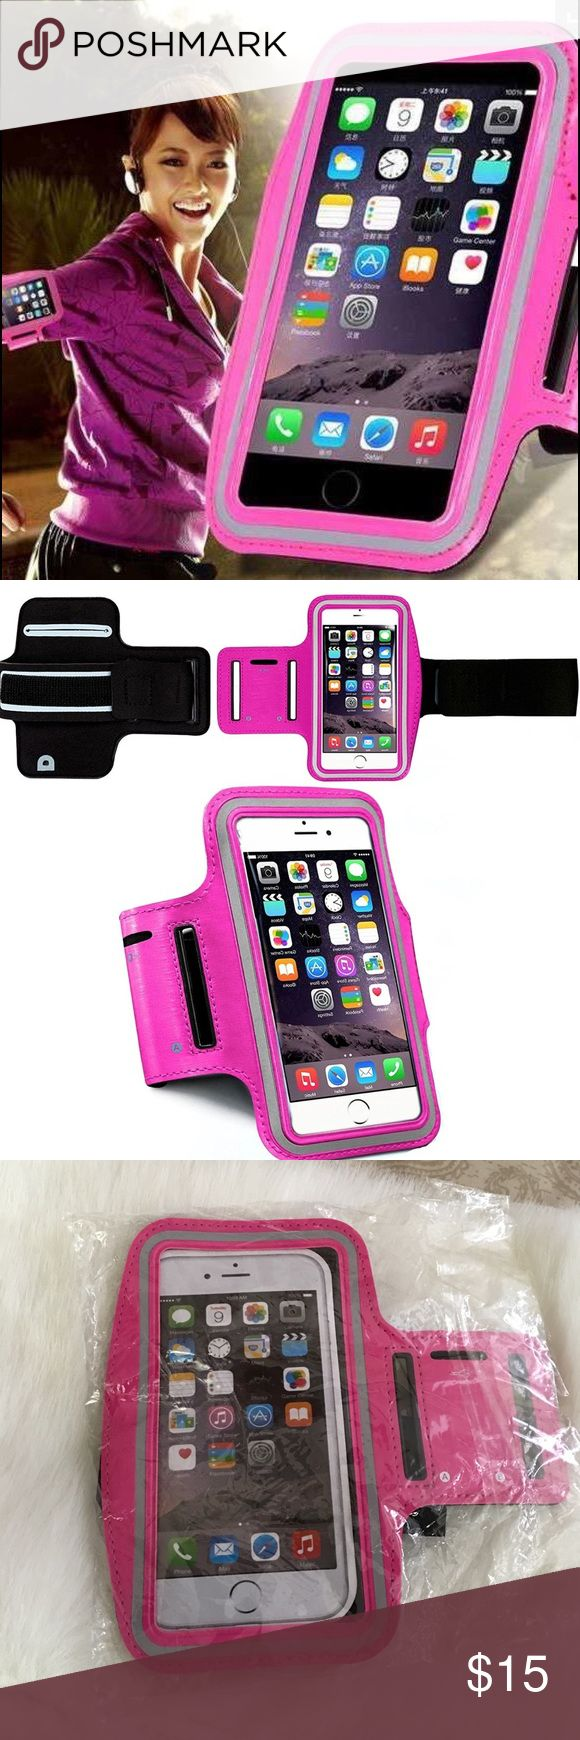 iPhone Sports Arm Band This armband strap case is designed exclusively for the iPhone 6 Plus. With a fully adjustable strap, the minimum arm circumference of 10.2 inches or 26cm and a reaches a maximum arm circumference of 17.3 inches or 44cm. Will fit iPhone 6 Plus ONLY. This water resistant armband is suitable for use with the player only and will NOT fit if the iPhone 6 Plus is cased. The water resistant feature of the case is perfect for the rain or snow. This armband is not waterproof…